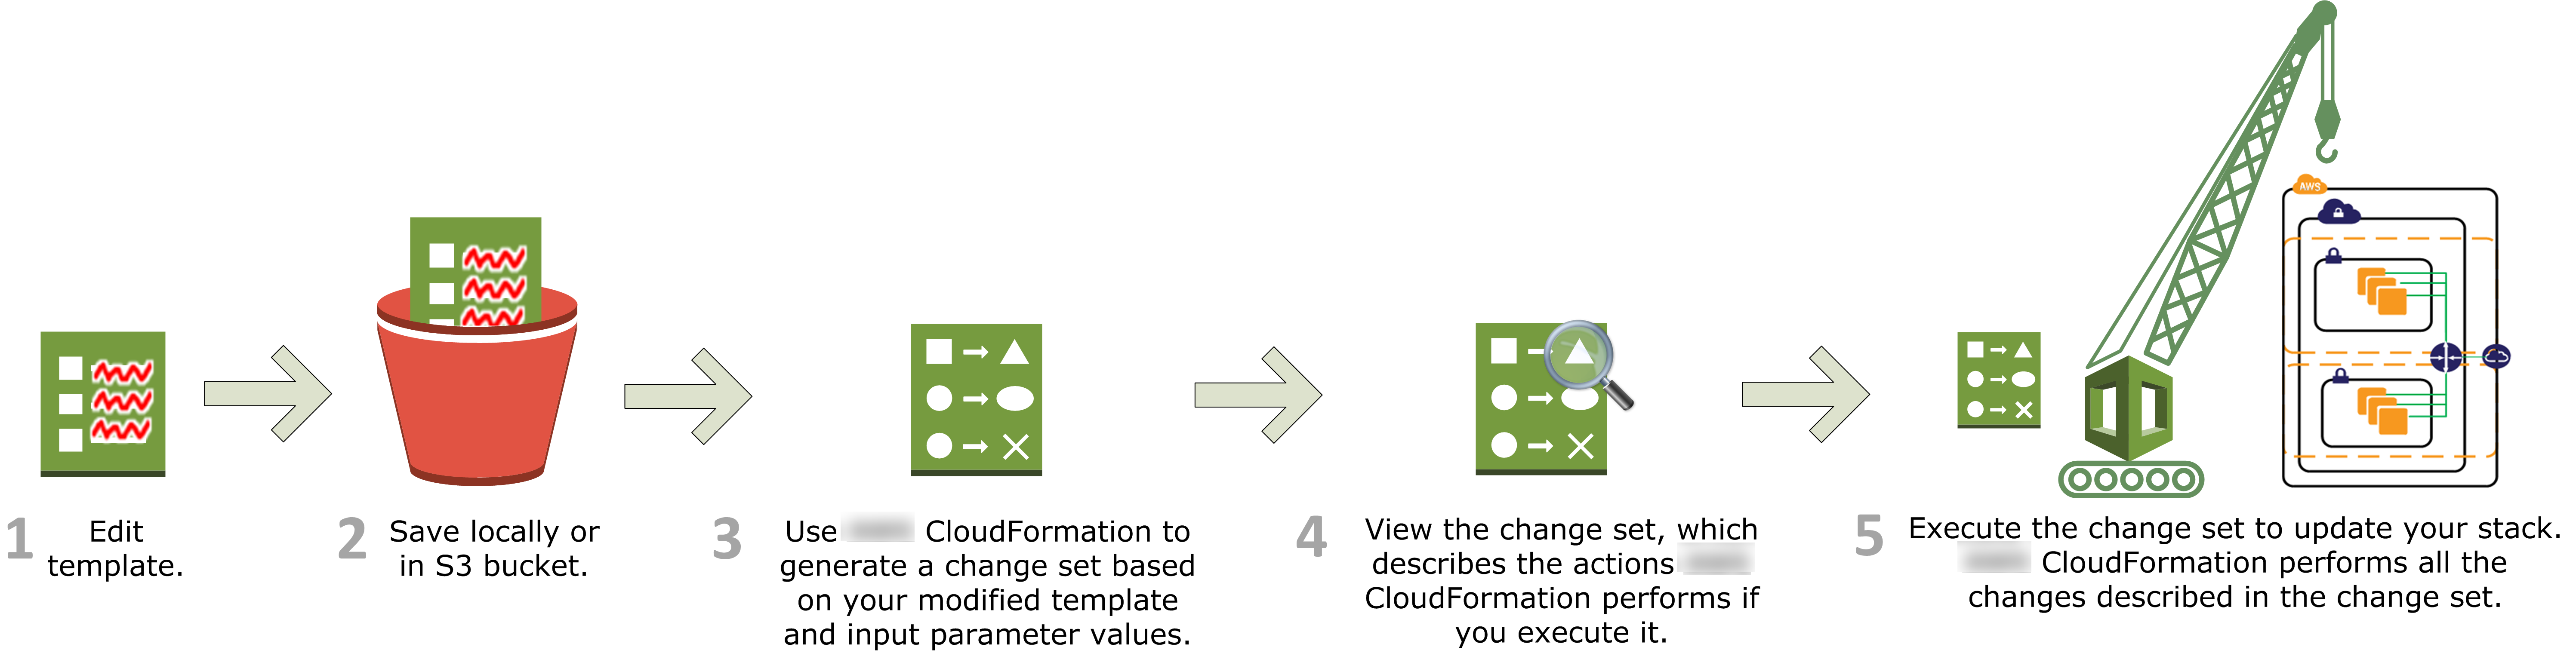 How Does AWS CloudFormation Work? - AWS CloudFormation